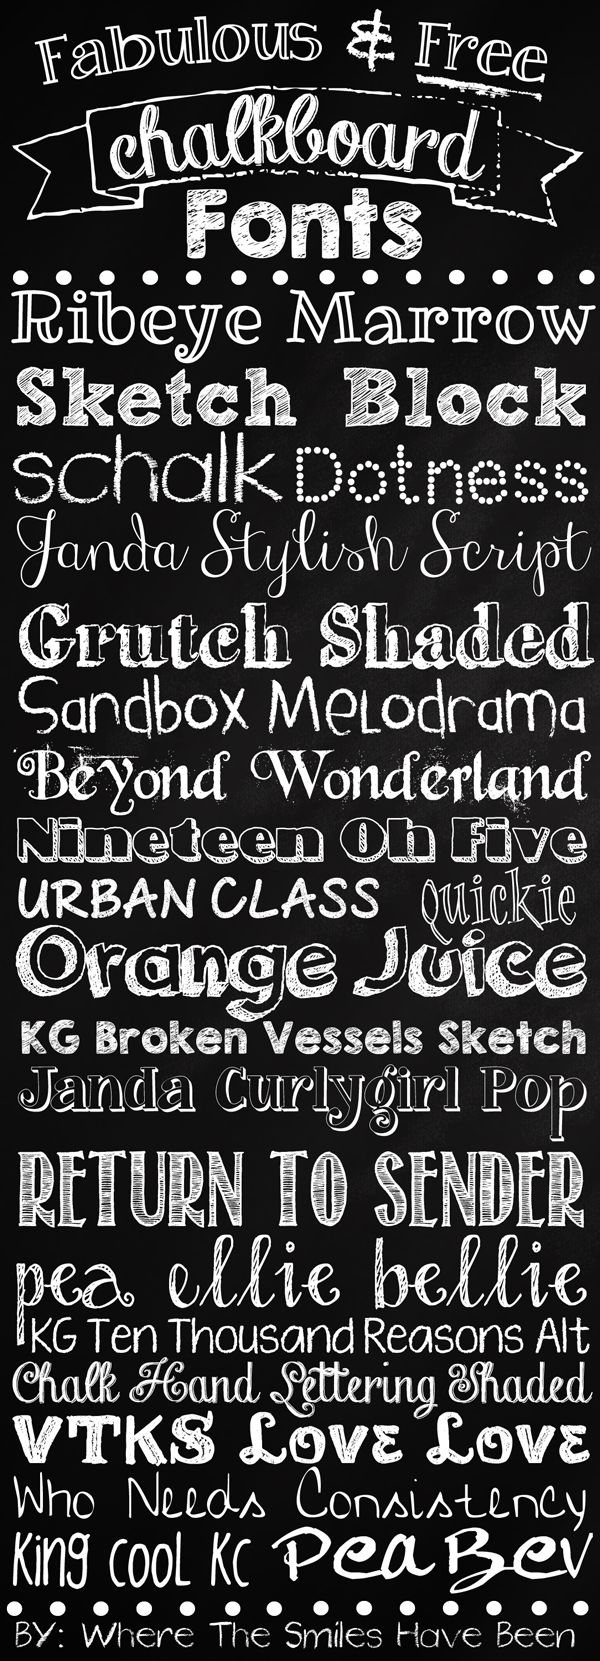 Fabulous & Free Chalkboard Fonts                                                                                                                                                                                 More